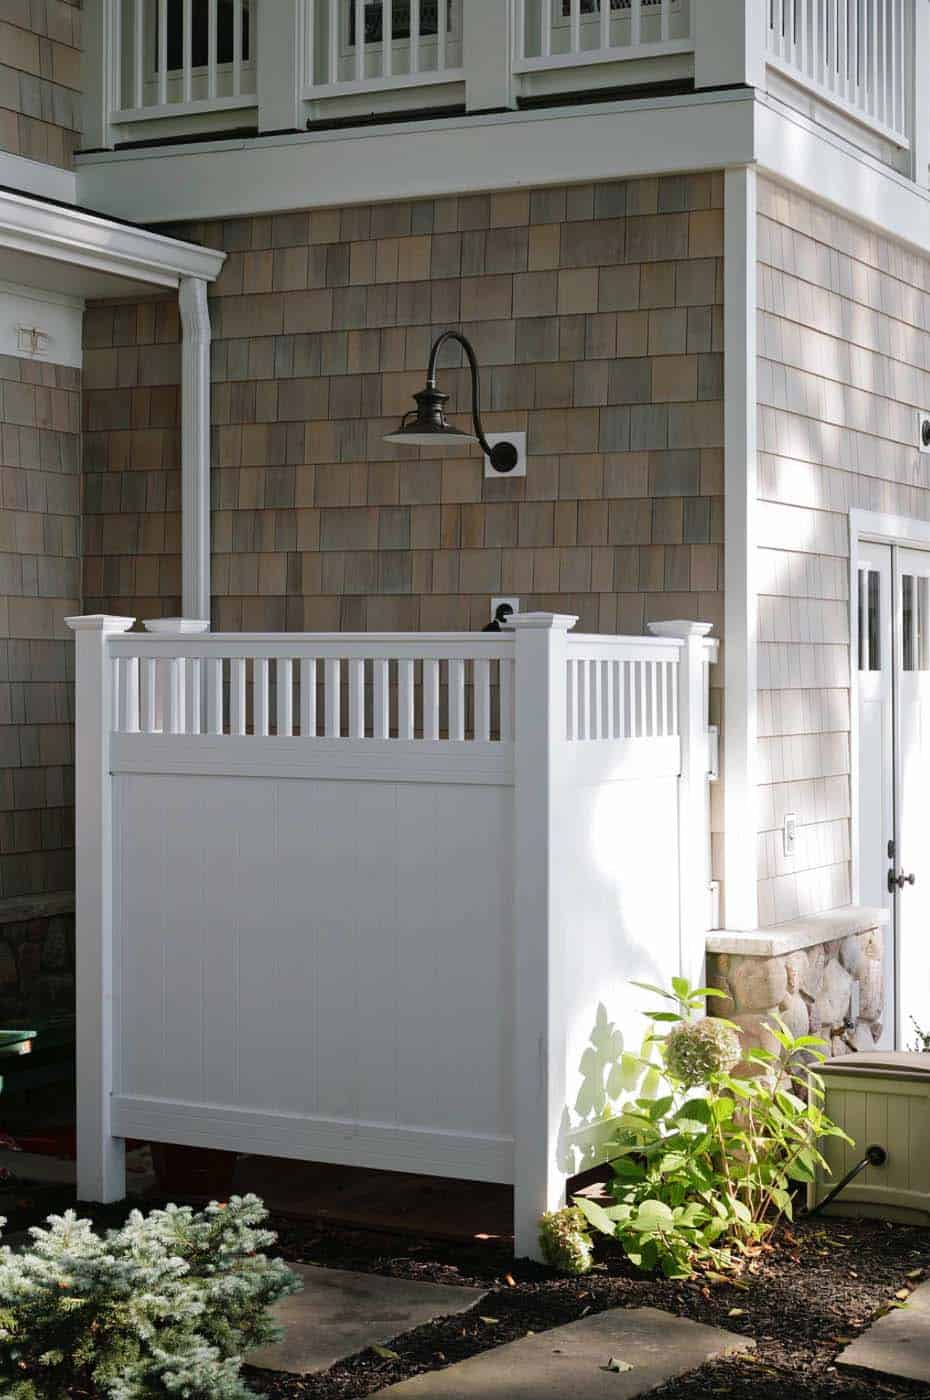 Outdoor Shower Design Ideas-38-1 Kindesign